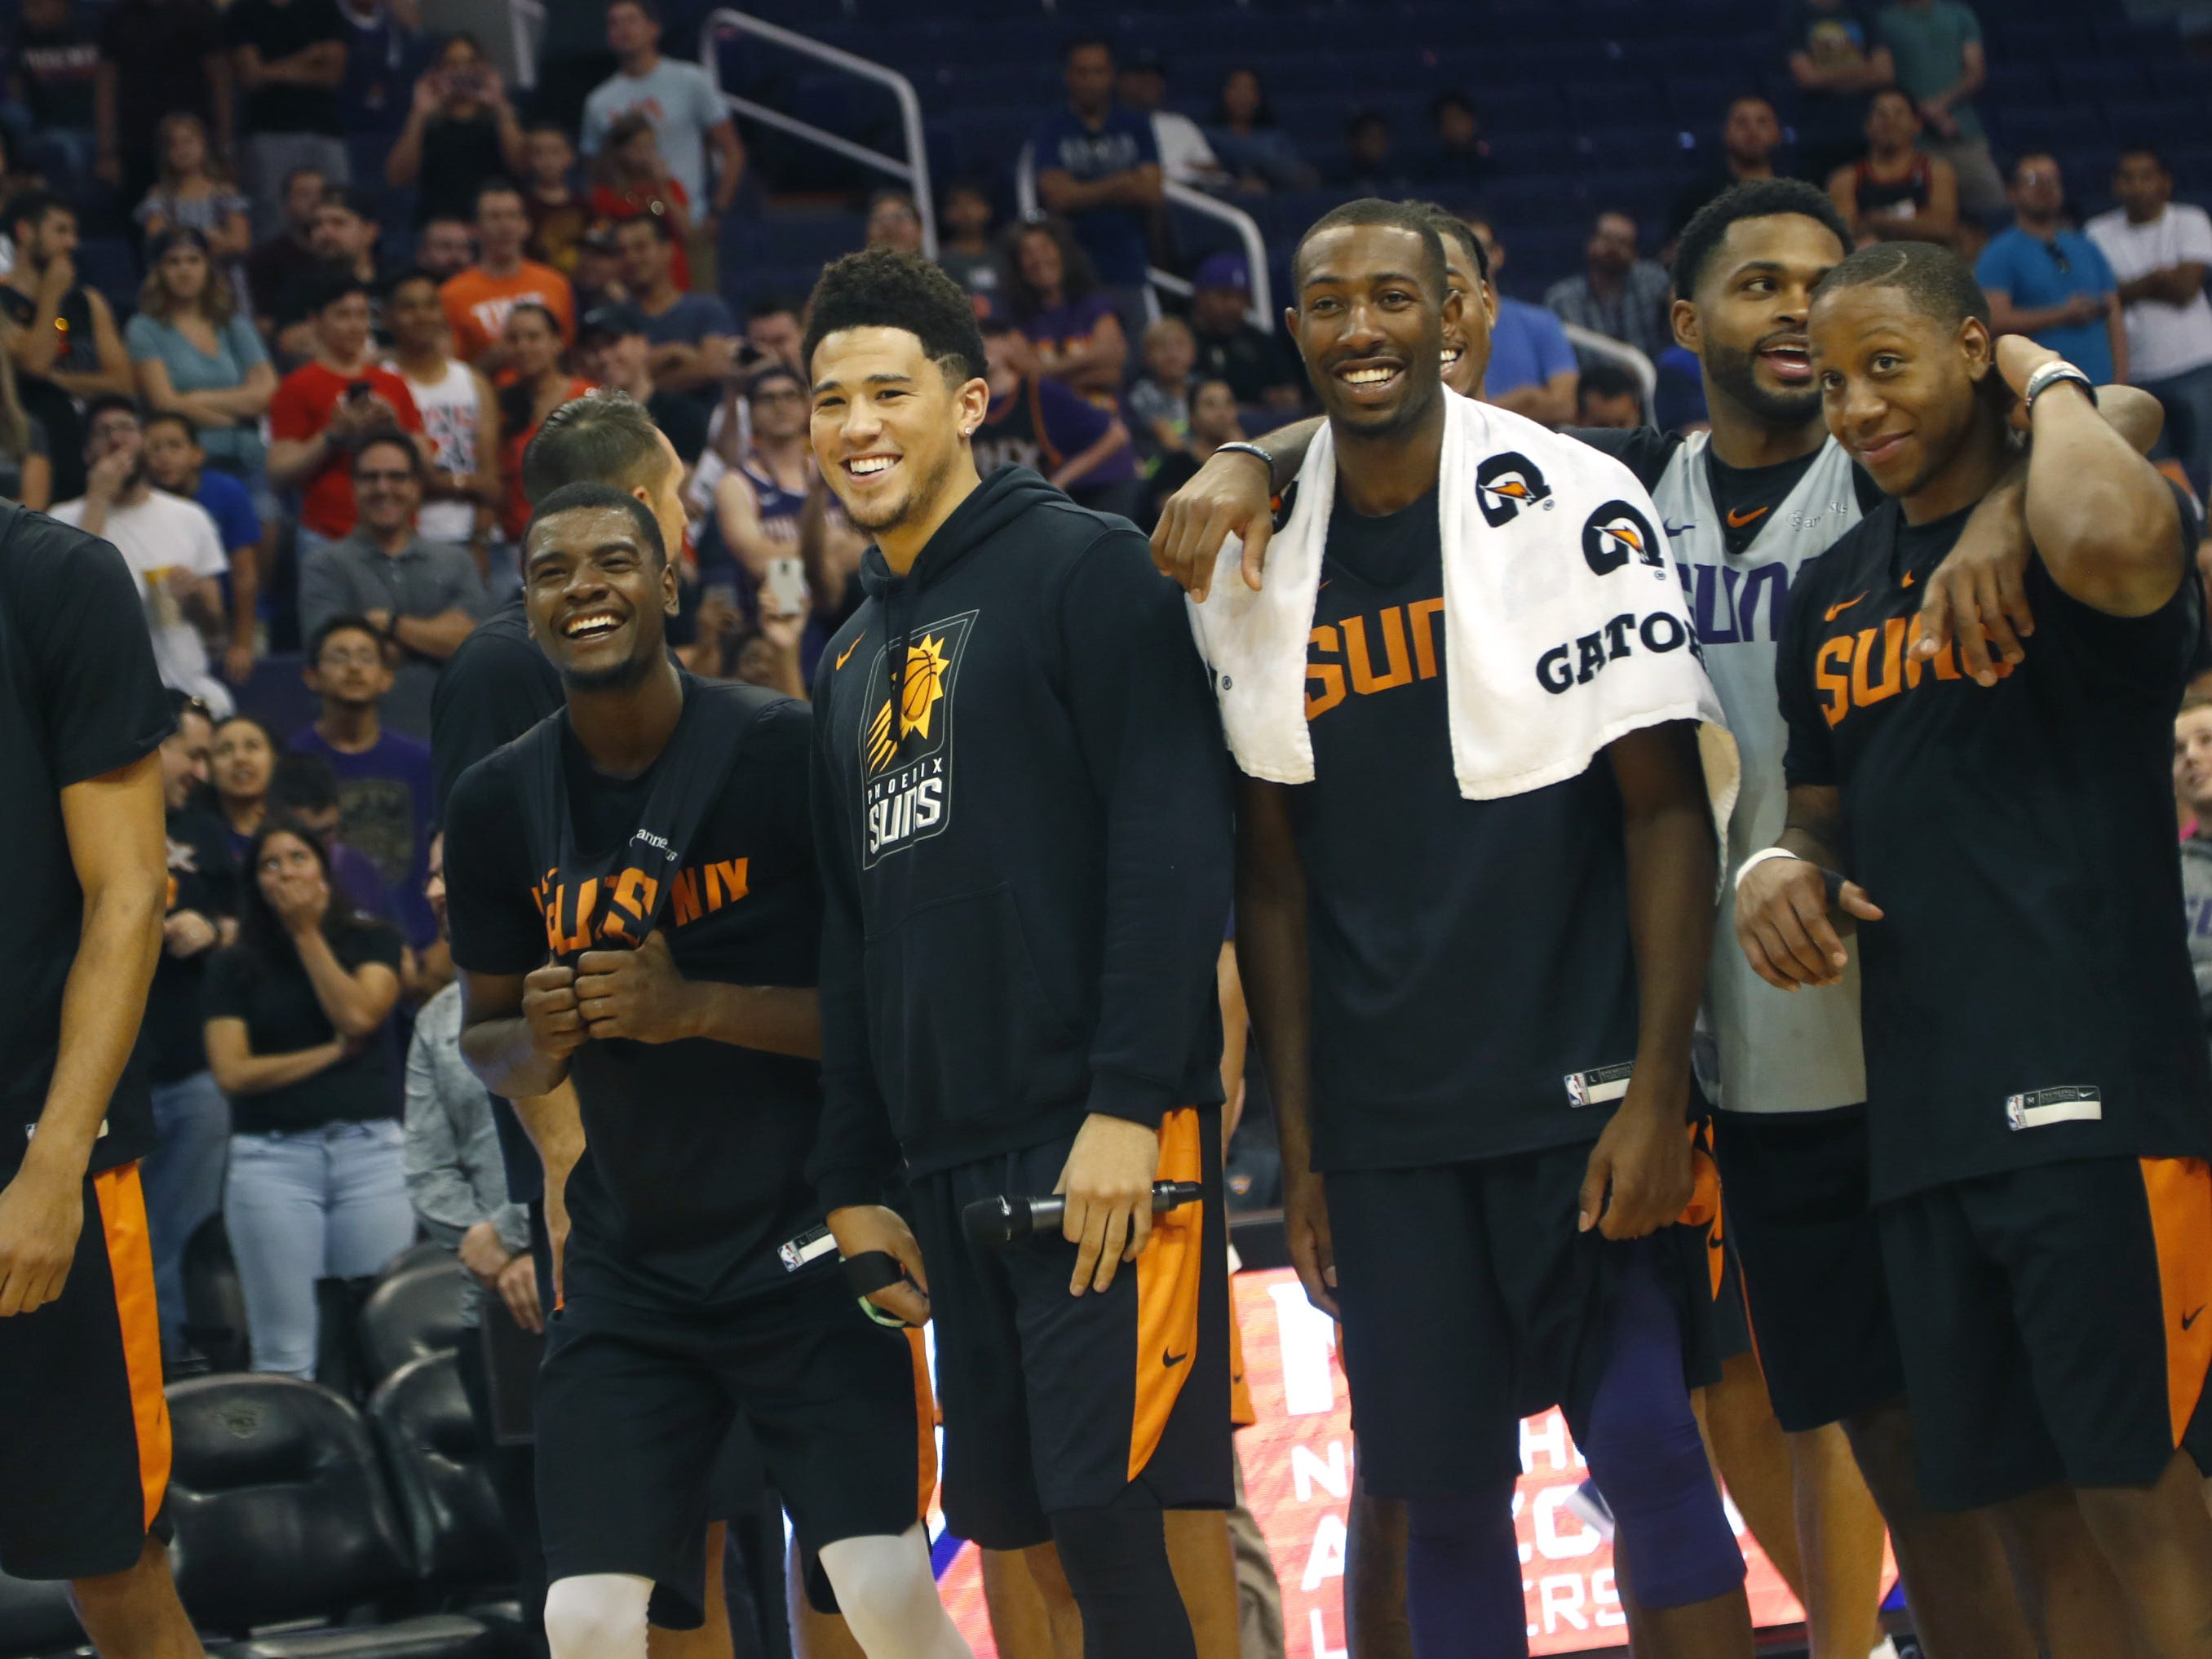 Suns players react as rookies wear costumes and dance during an Open Practice at Talking Stick Resort Arena in Phoenix, Ariz. on Sept. 29, 2018.